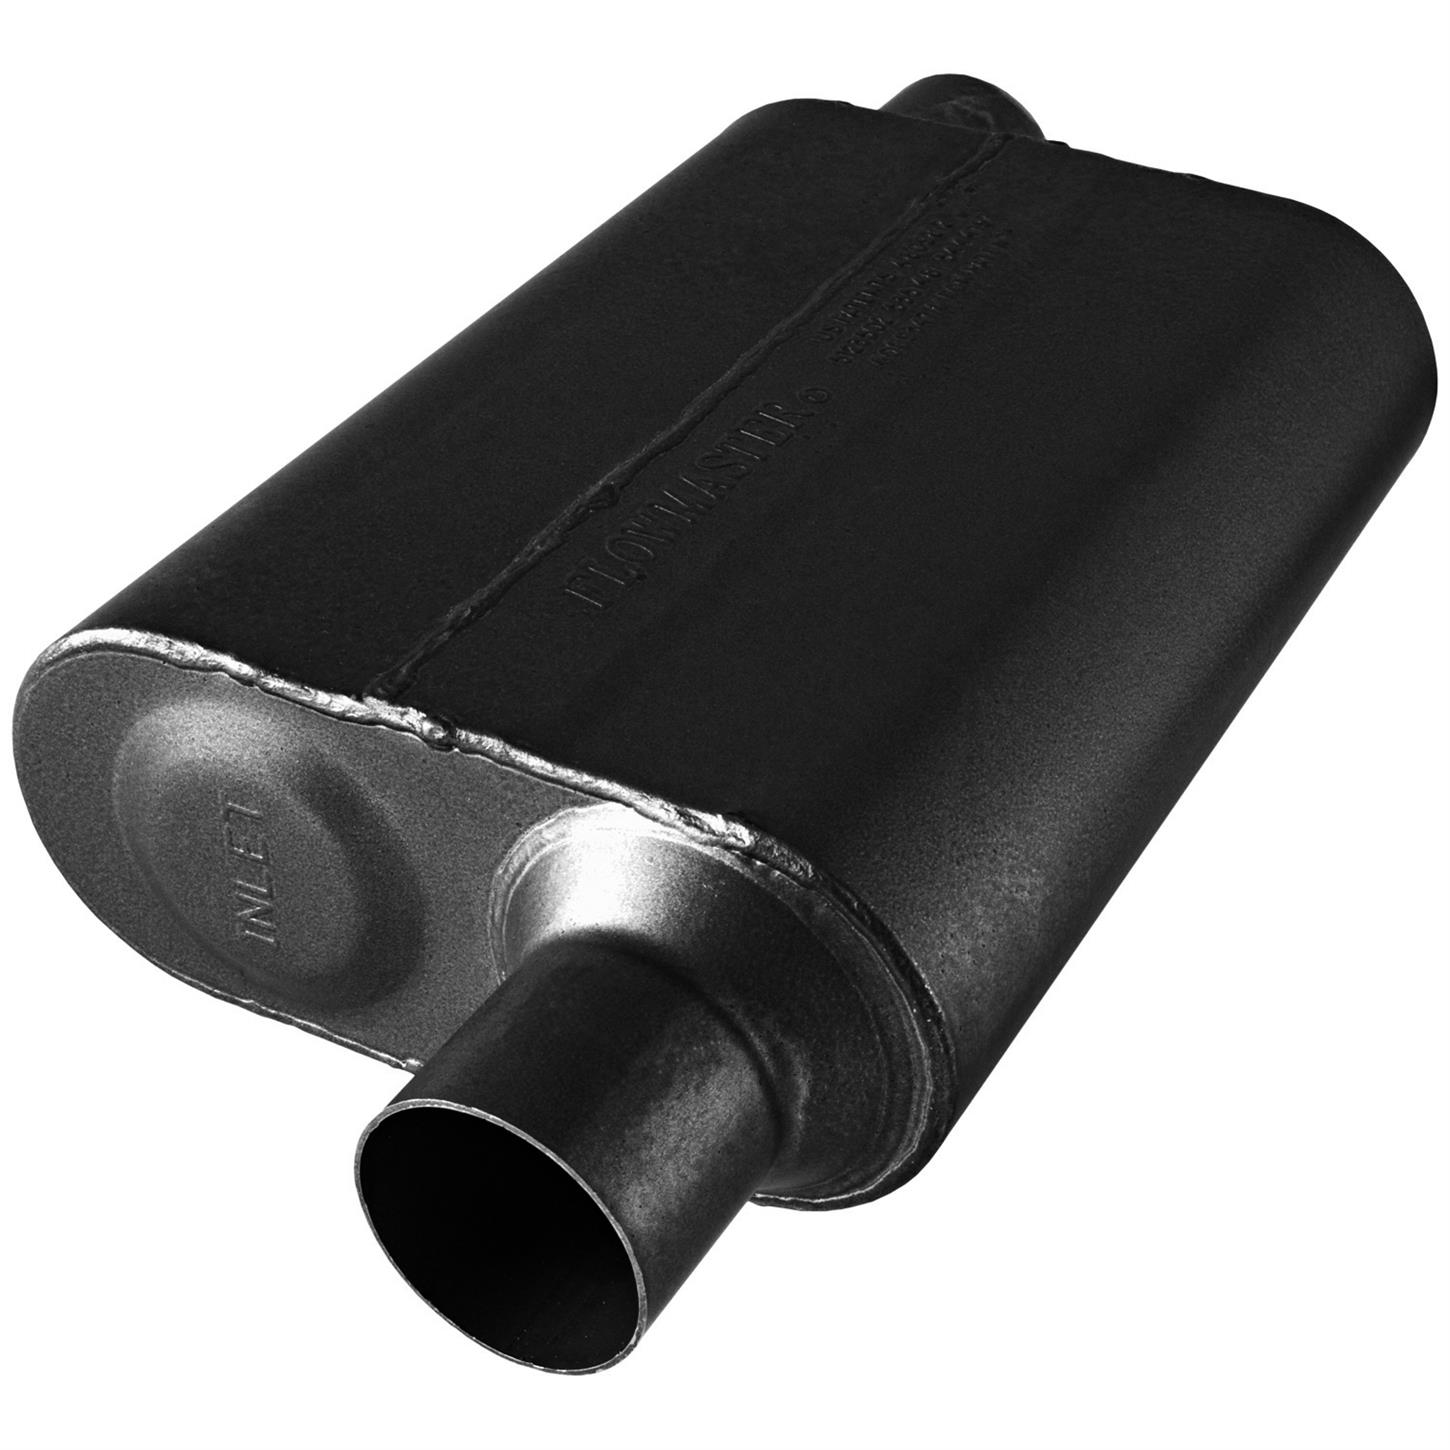 Flowmaster 843048 Super 44 Series Muffler 409S 3.00 Offset IN//3.00 Offset OUT Aggressive Sound